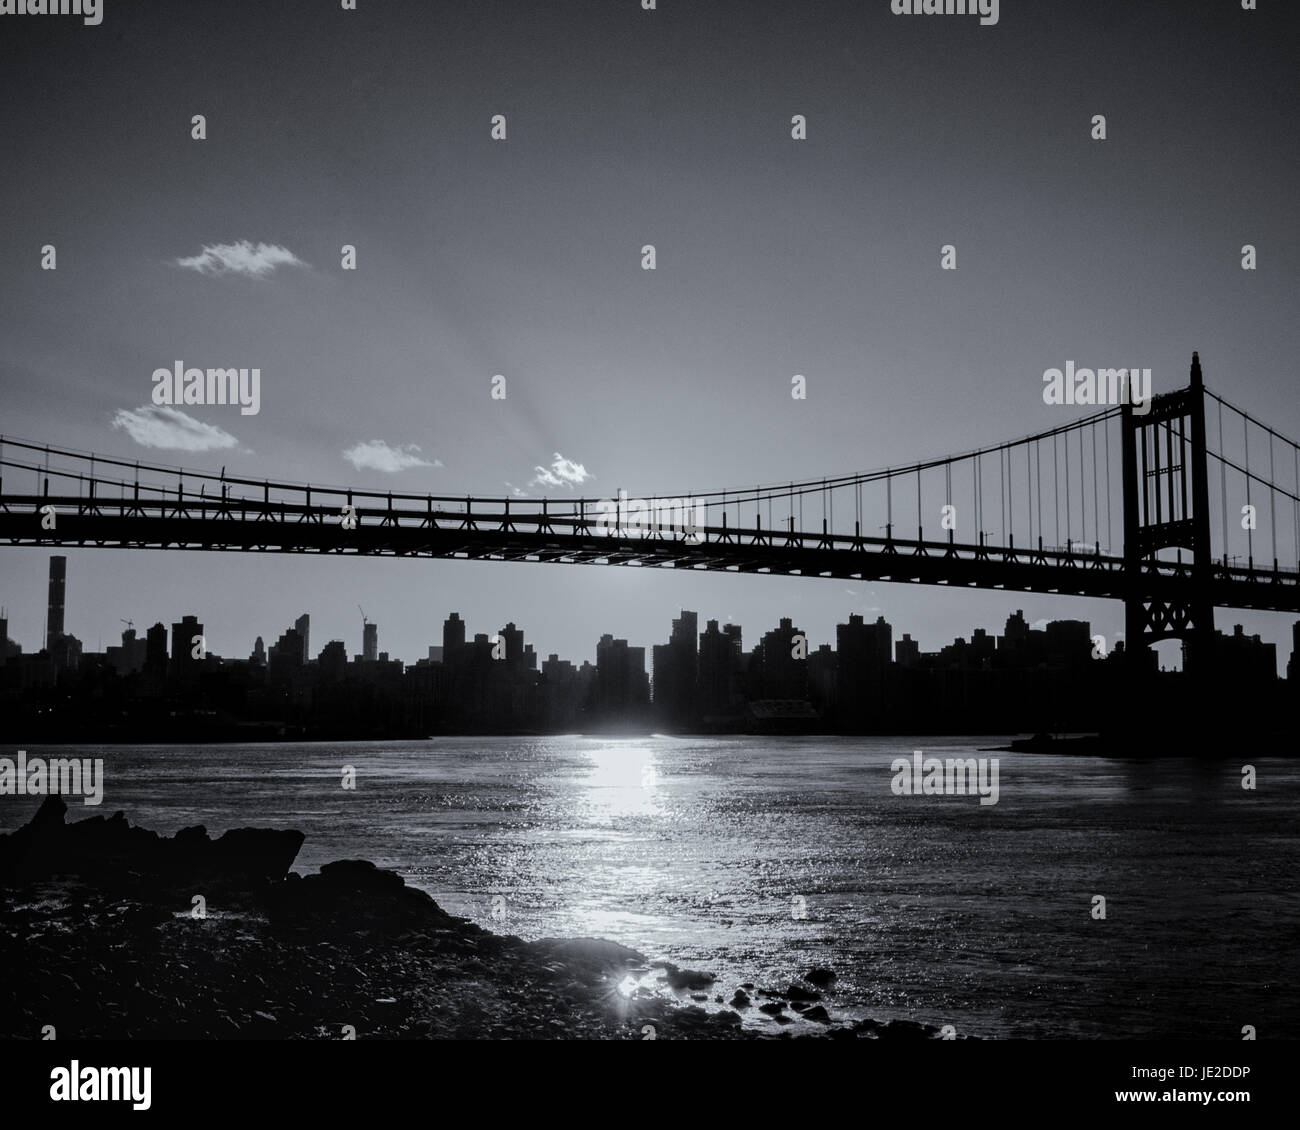 NYC Midtown Skyline from Astoria, Queens, NYC, NY - Stock Image